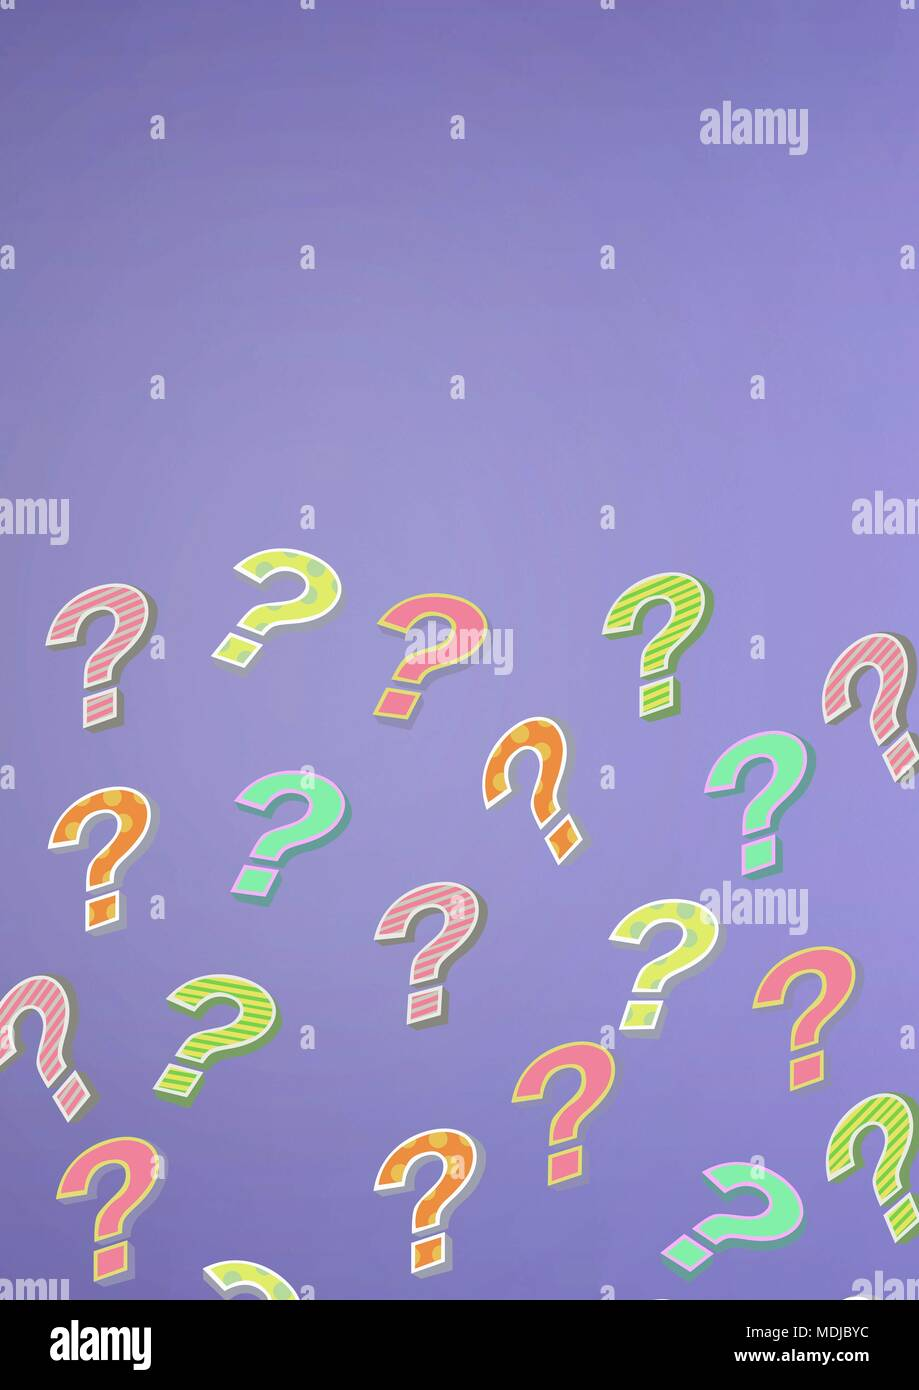 colorful funky question marks stock photo 180498736 alamy